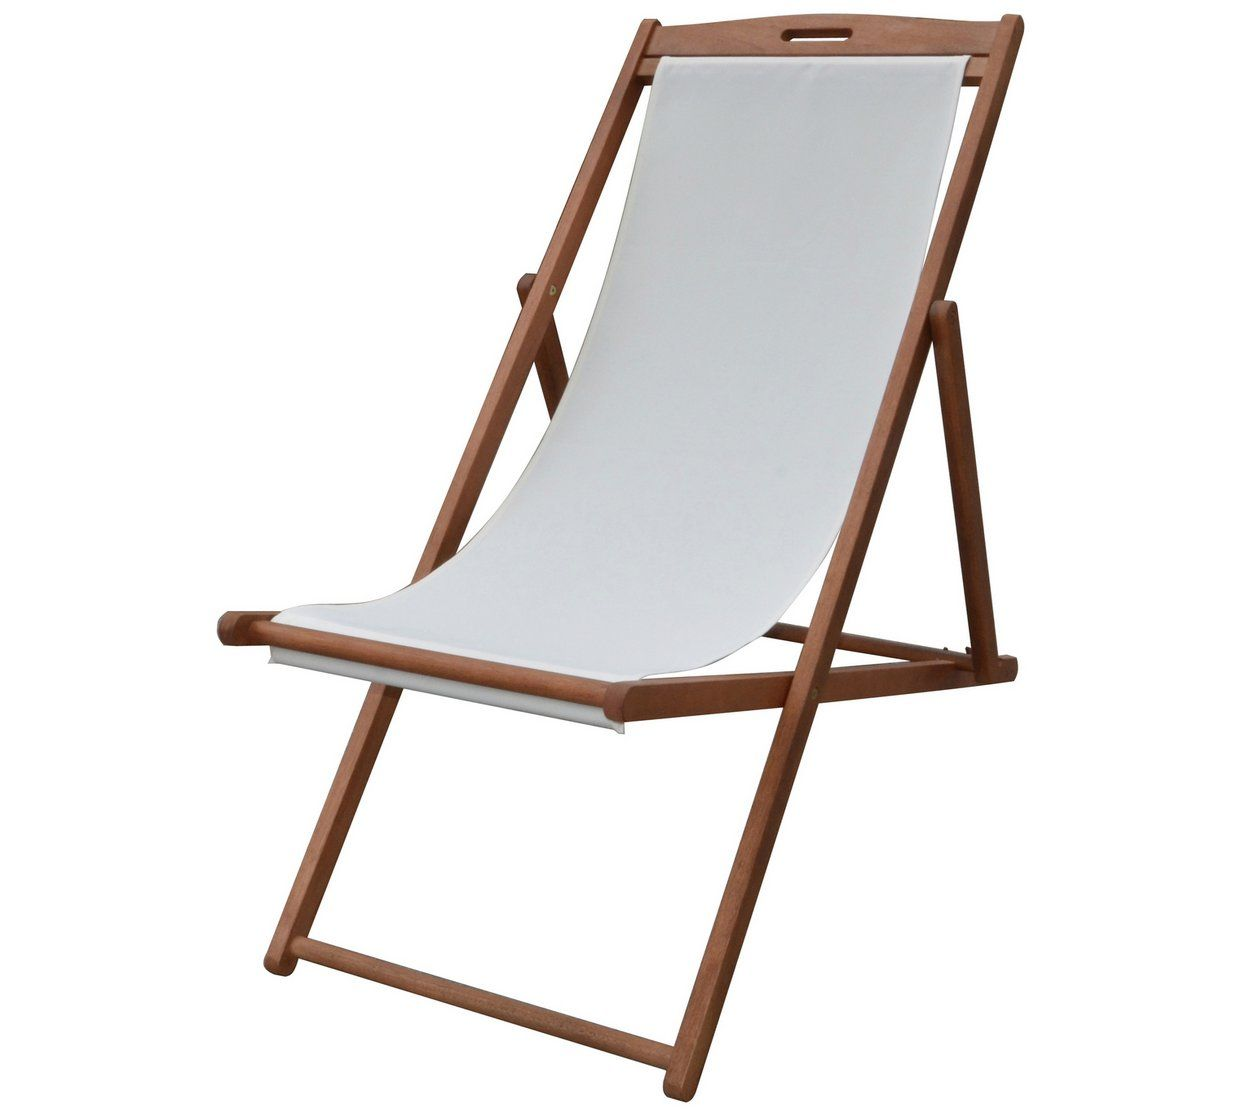 Pleasant Home Deck Chair Cream In 2019 Sun Lounger Deck Chairs Gamerscity Chair Design For Home Gamerscityorg